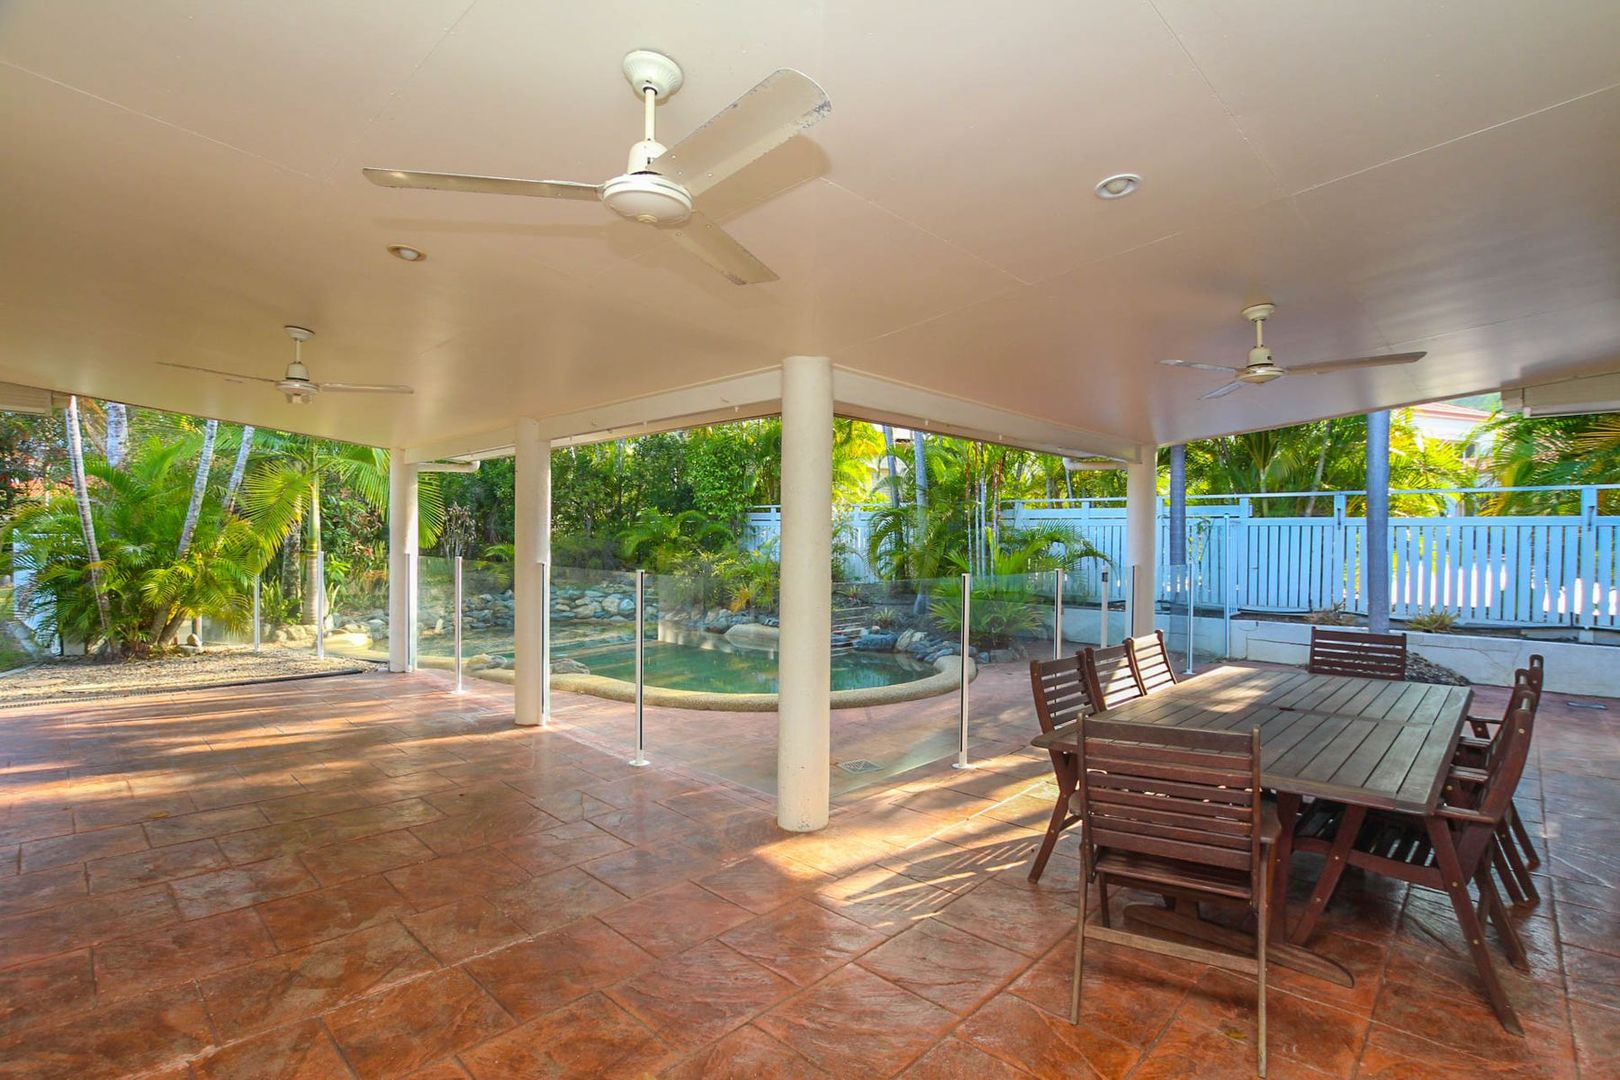 15 Stream Avenue, Paradise Palms, Kewarra Beach QLD 4879, Image 1